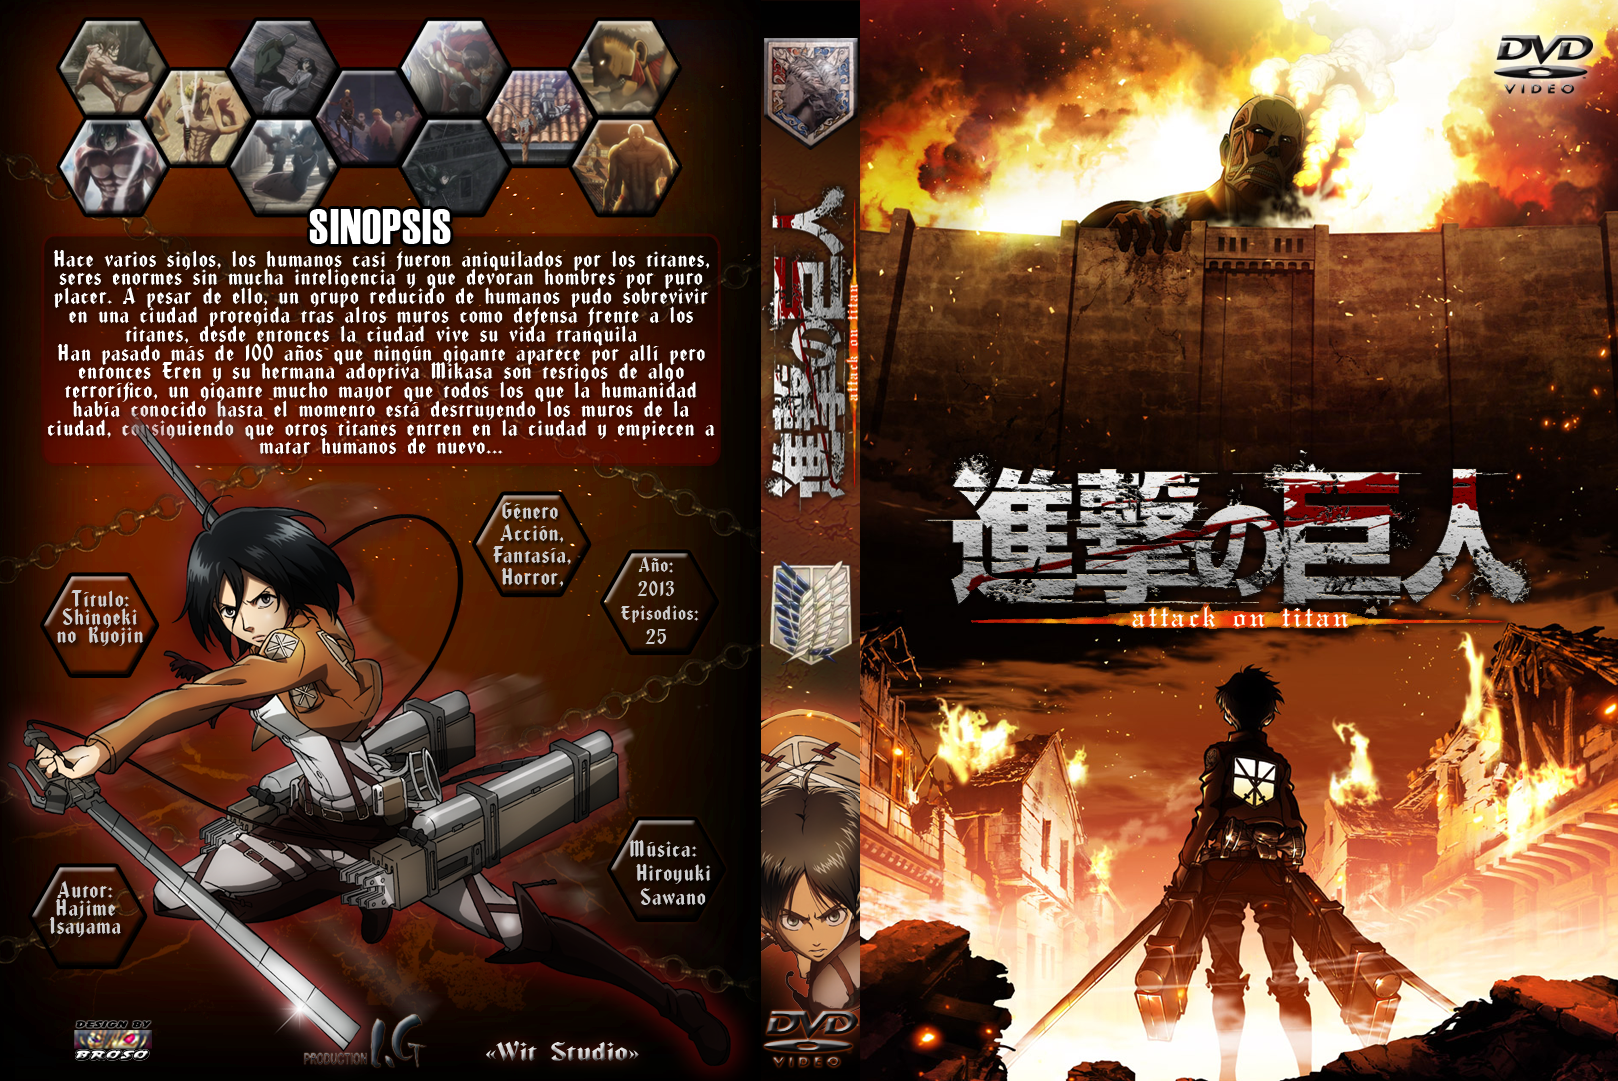 https://www.uplooder.net/img/image/63/b7ae813ba7c29e4b9d5ceb9fb76a1fa9/shingeki-no-kyojin-cover-by-broso-by-broso93-d6gnths.png